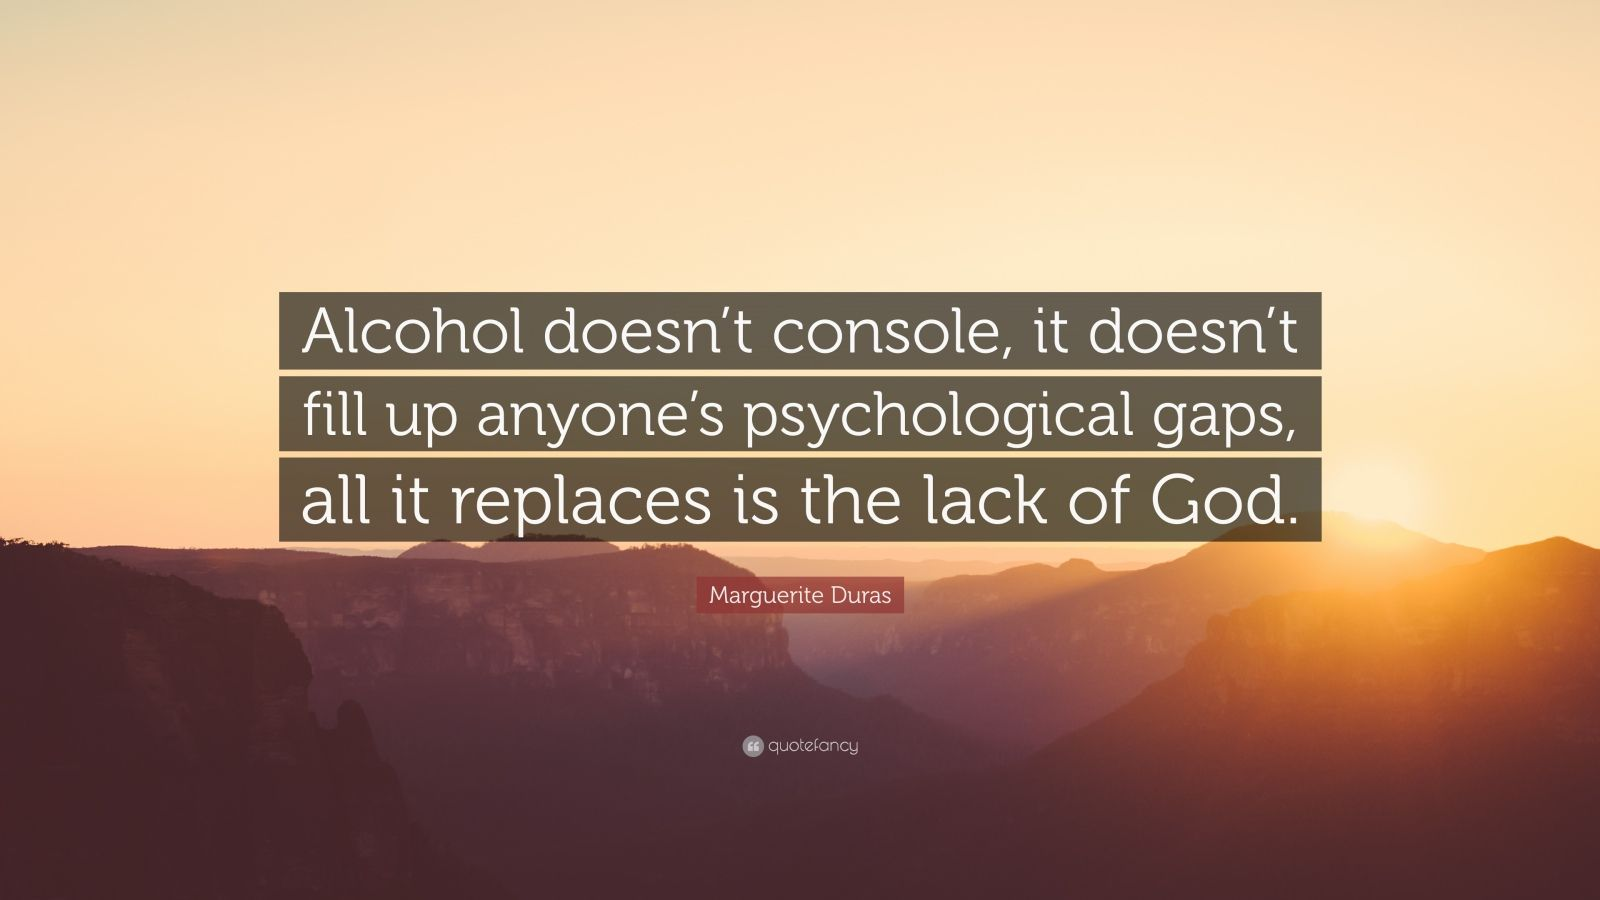 """Marguerite Duras Quote: """"Alcohol doesn't console, it doesn't fill up anyone's psychological gaps, all it replaces is the lack of God."""""""